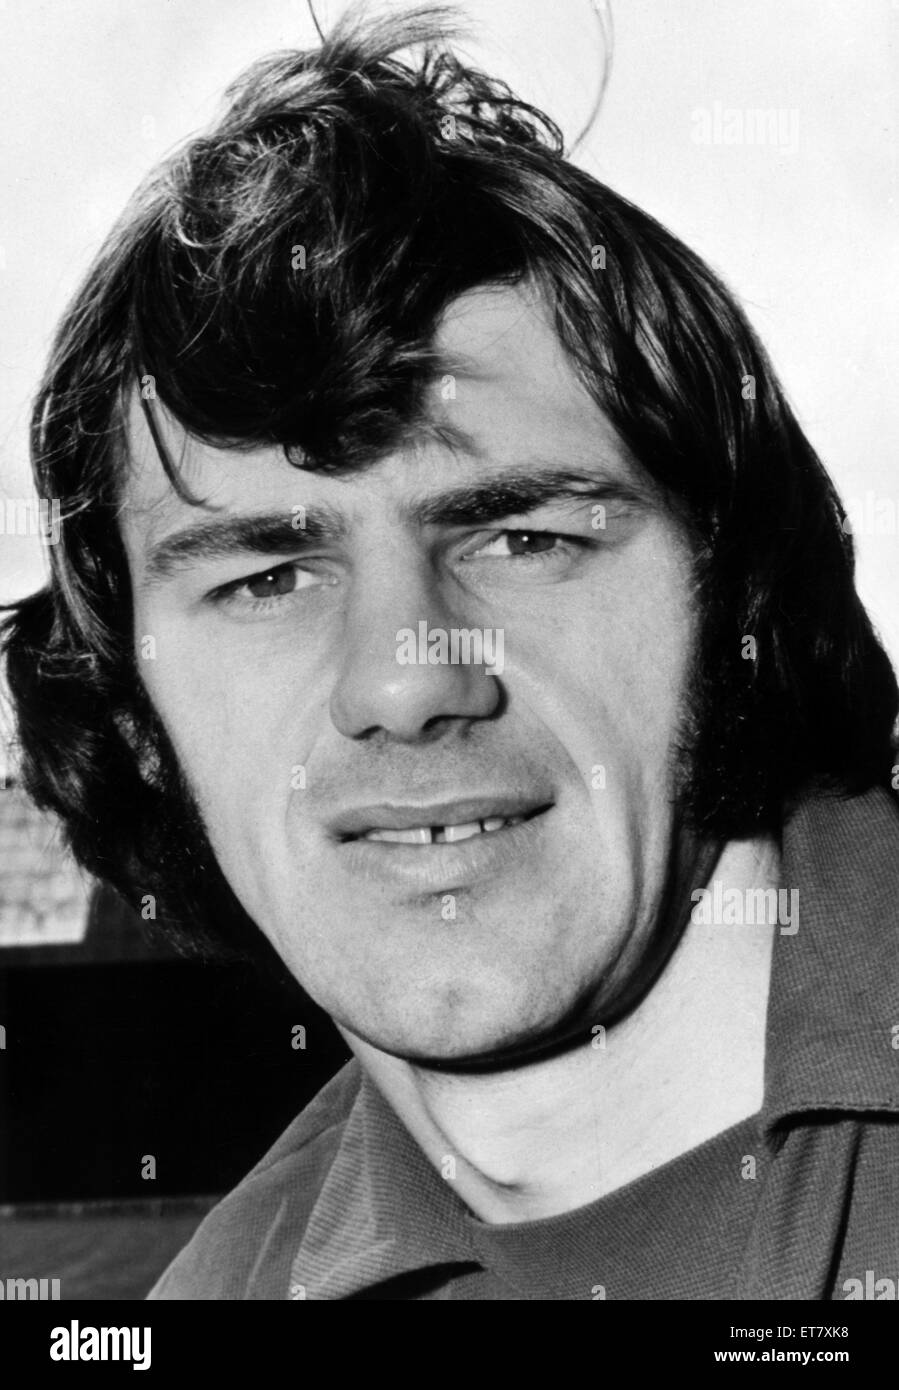 Alan Warboys, Cardiff City Football Player, 1970 - 1972. Pictured, July 1972. Stock Photo